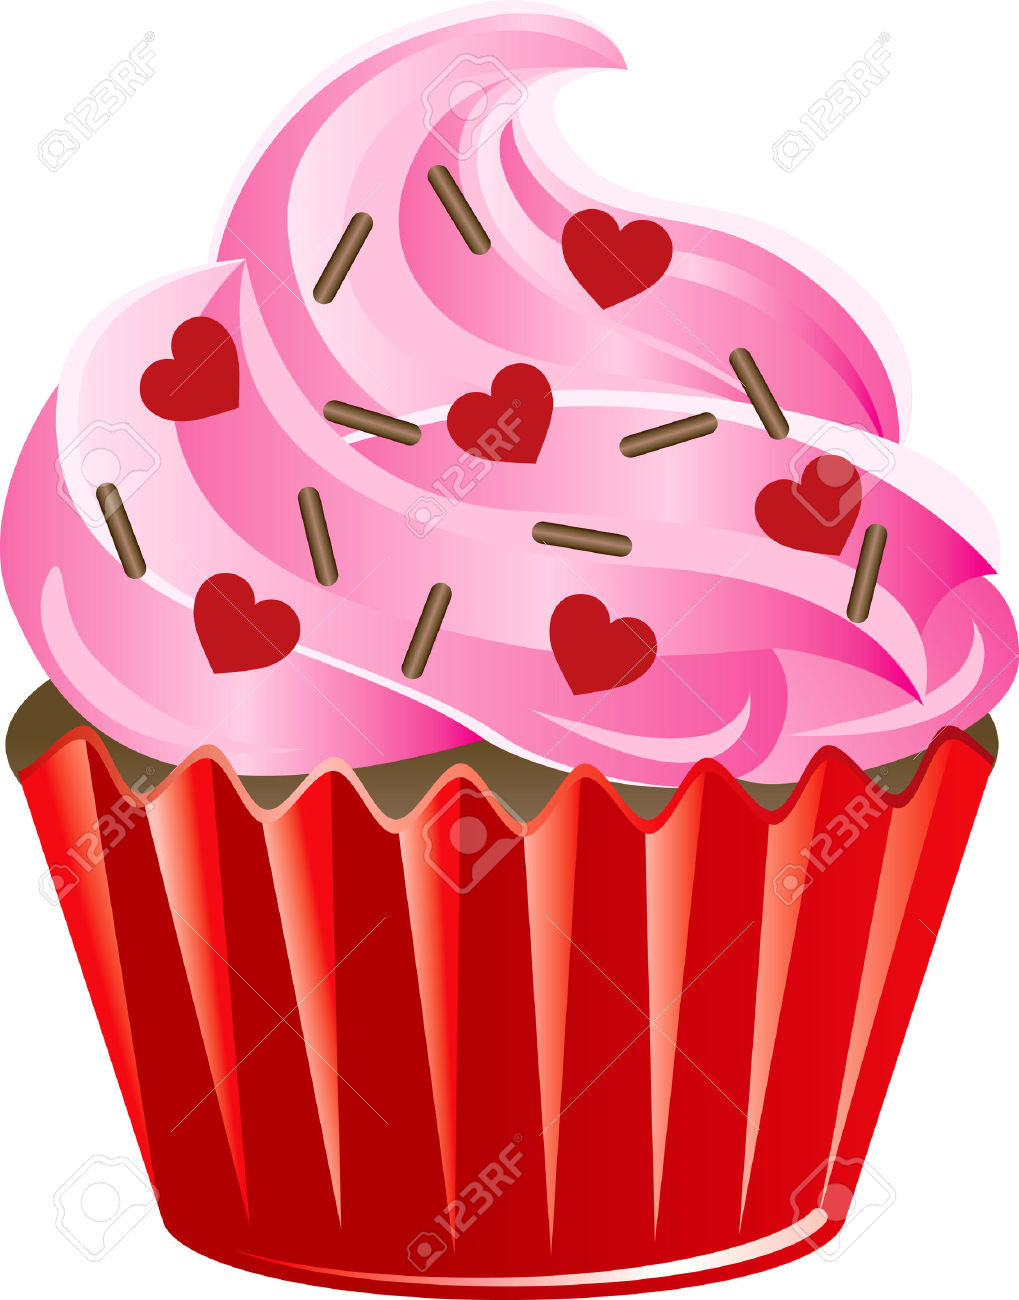 Sweets clipart valentine's day 15 Valentine Cupcake Art 101